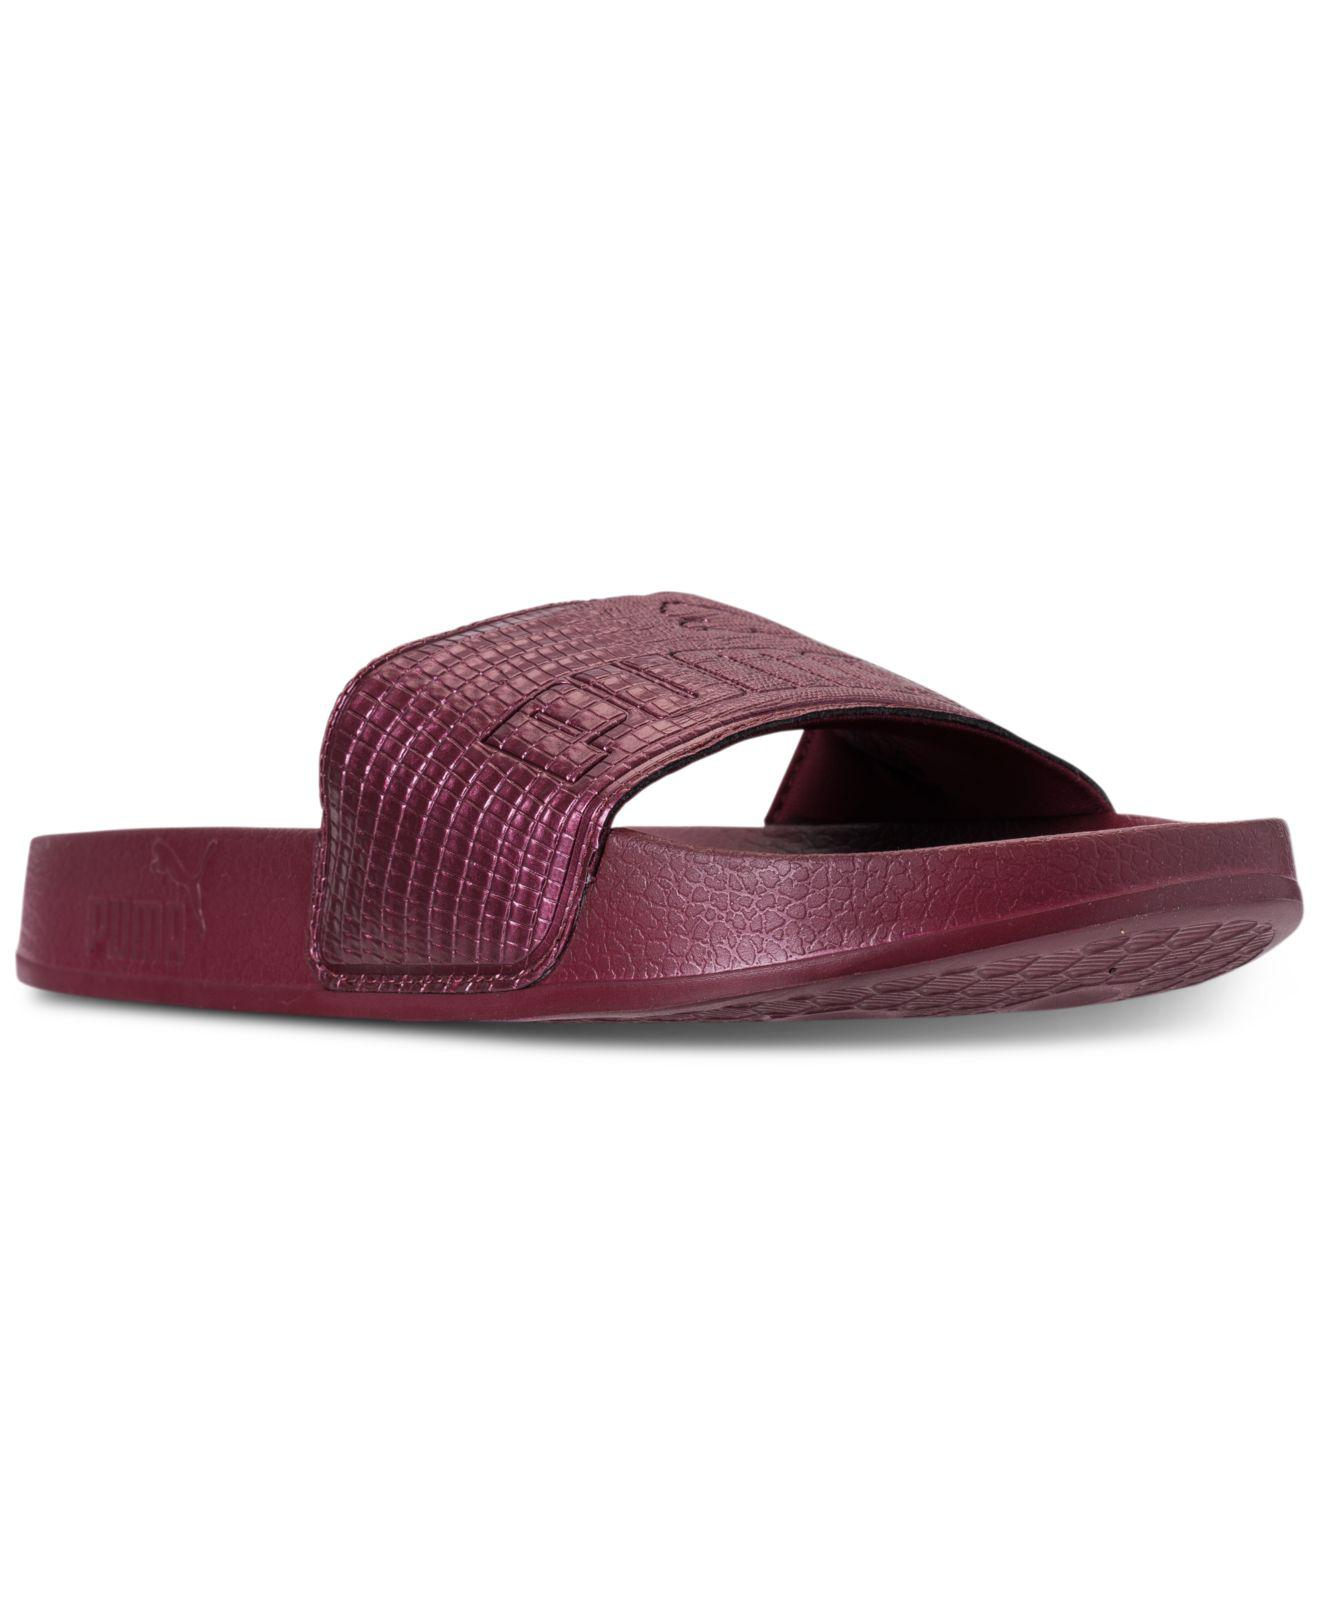 Lyst - PUMA Women s Leadcat Leather Slide Sandals From Finish Line ... 0b07b0645